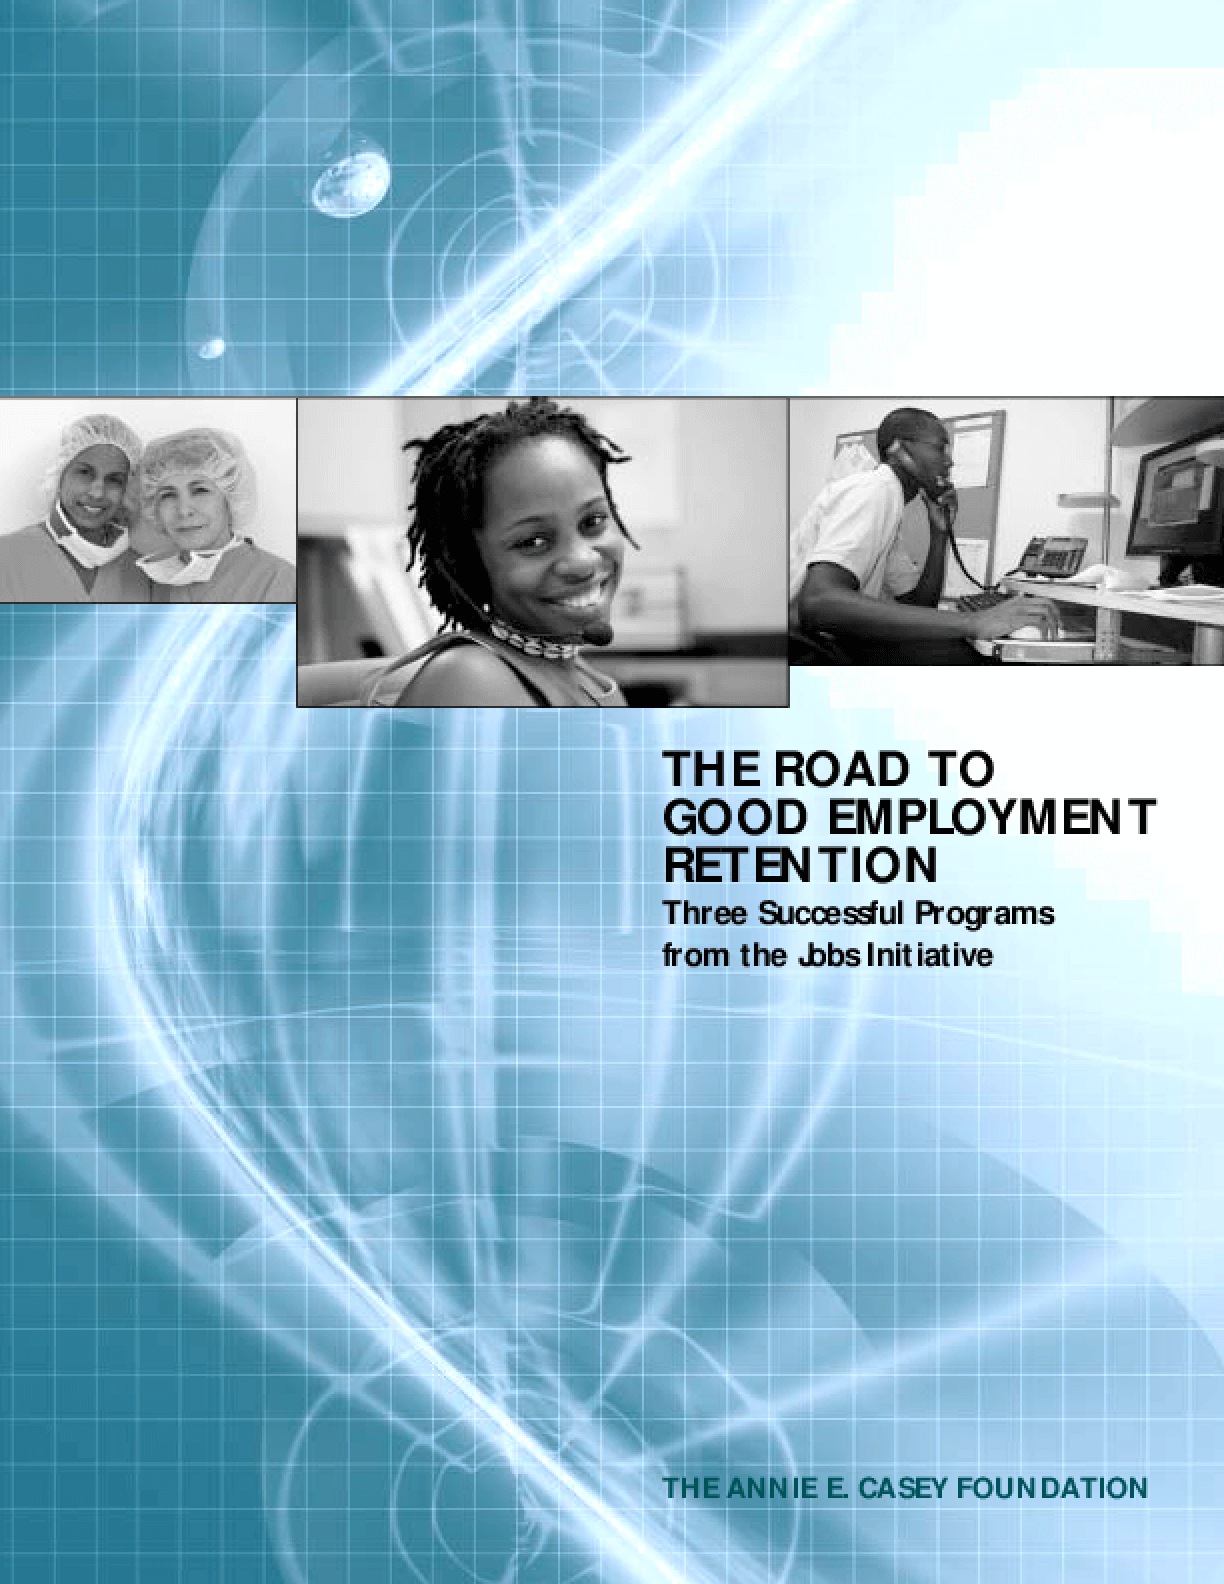 The Road to Good Employment Retention: Three Successful Programs From the Jobs Initiative